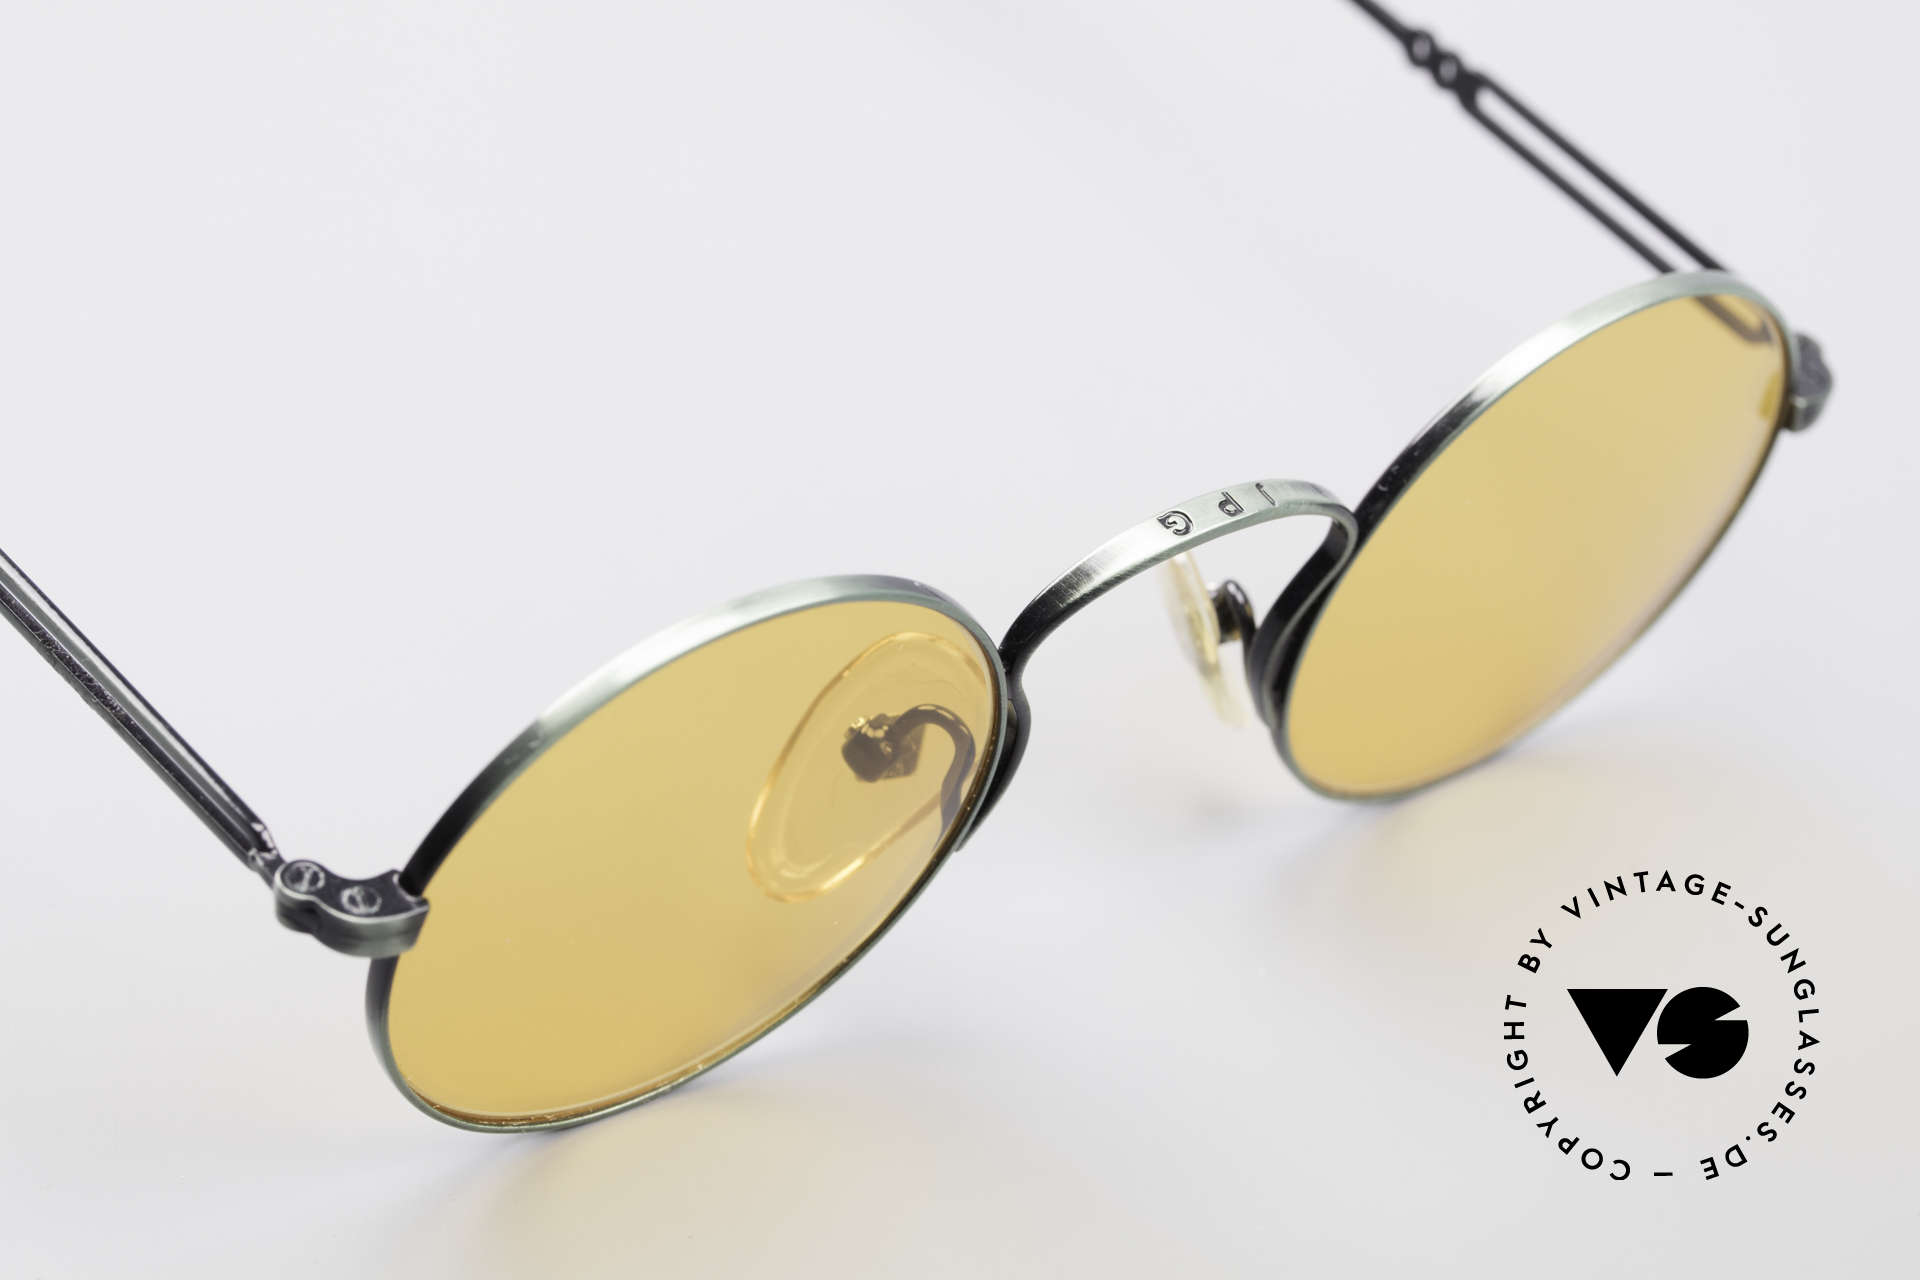 Jean Paul Gaultier 55-0172 Round Vintage Glasses JPG, NO RETRO shades, but an old J.P. Gaultier original, Made for Men and Women